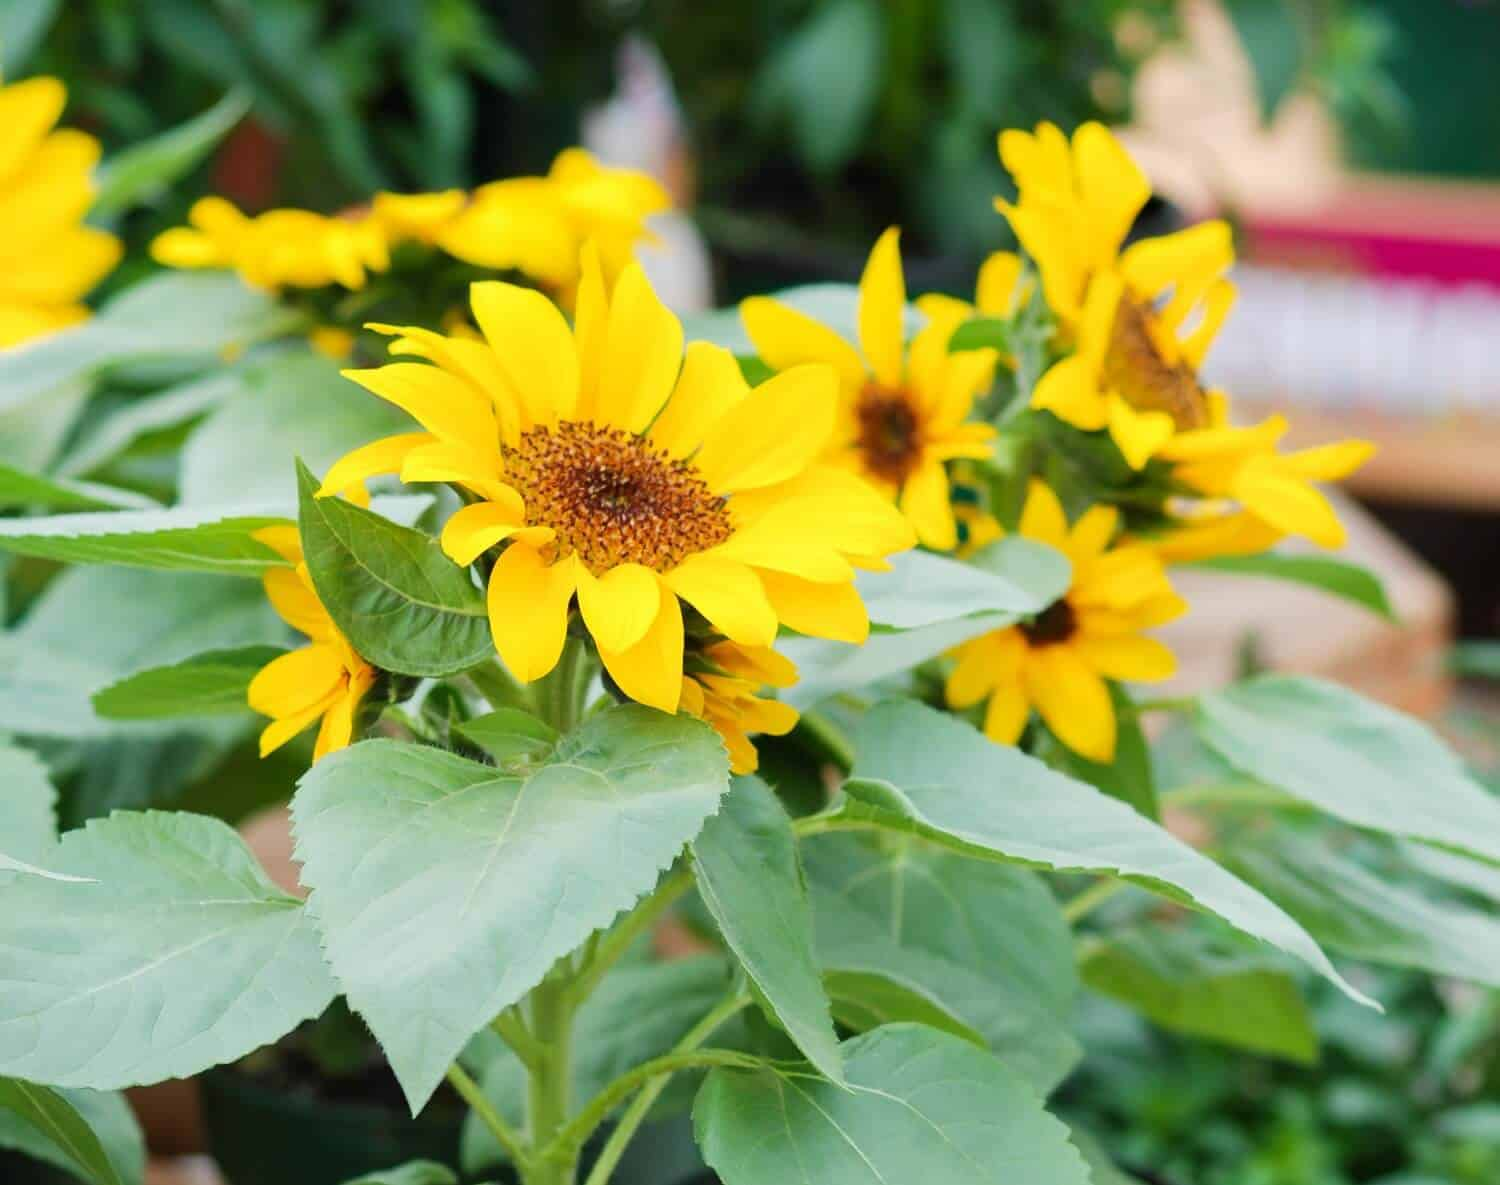 How to Grow Sunflowers from Seeds and Cuttings